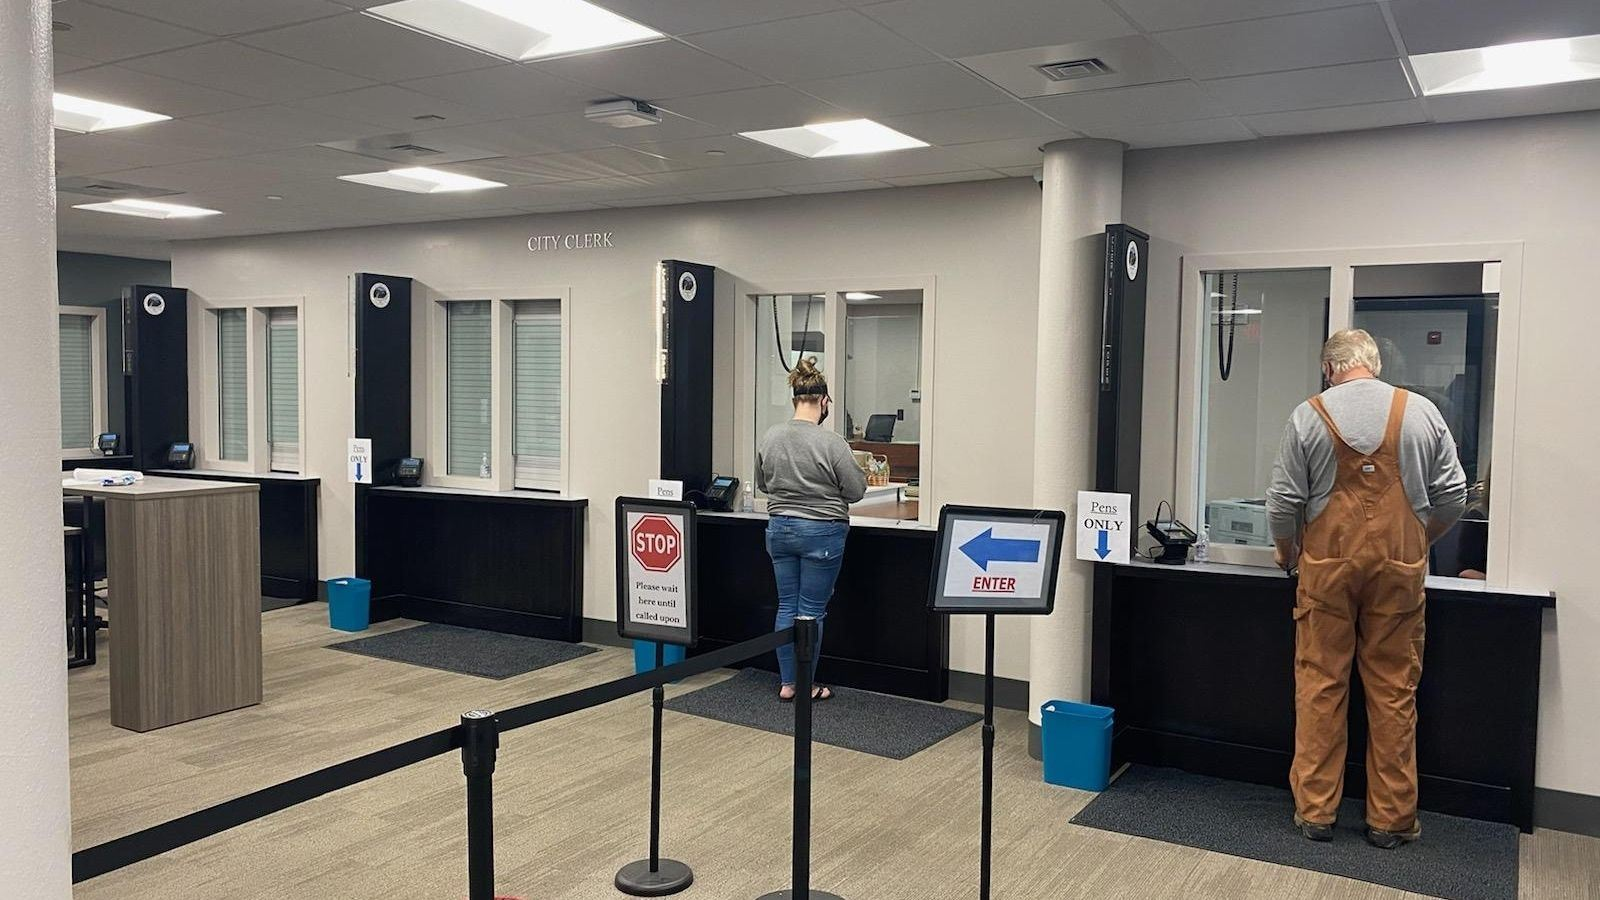 City Clerk Counter Area